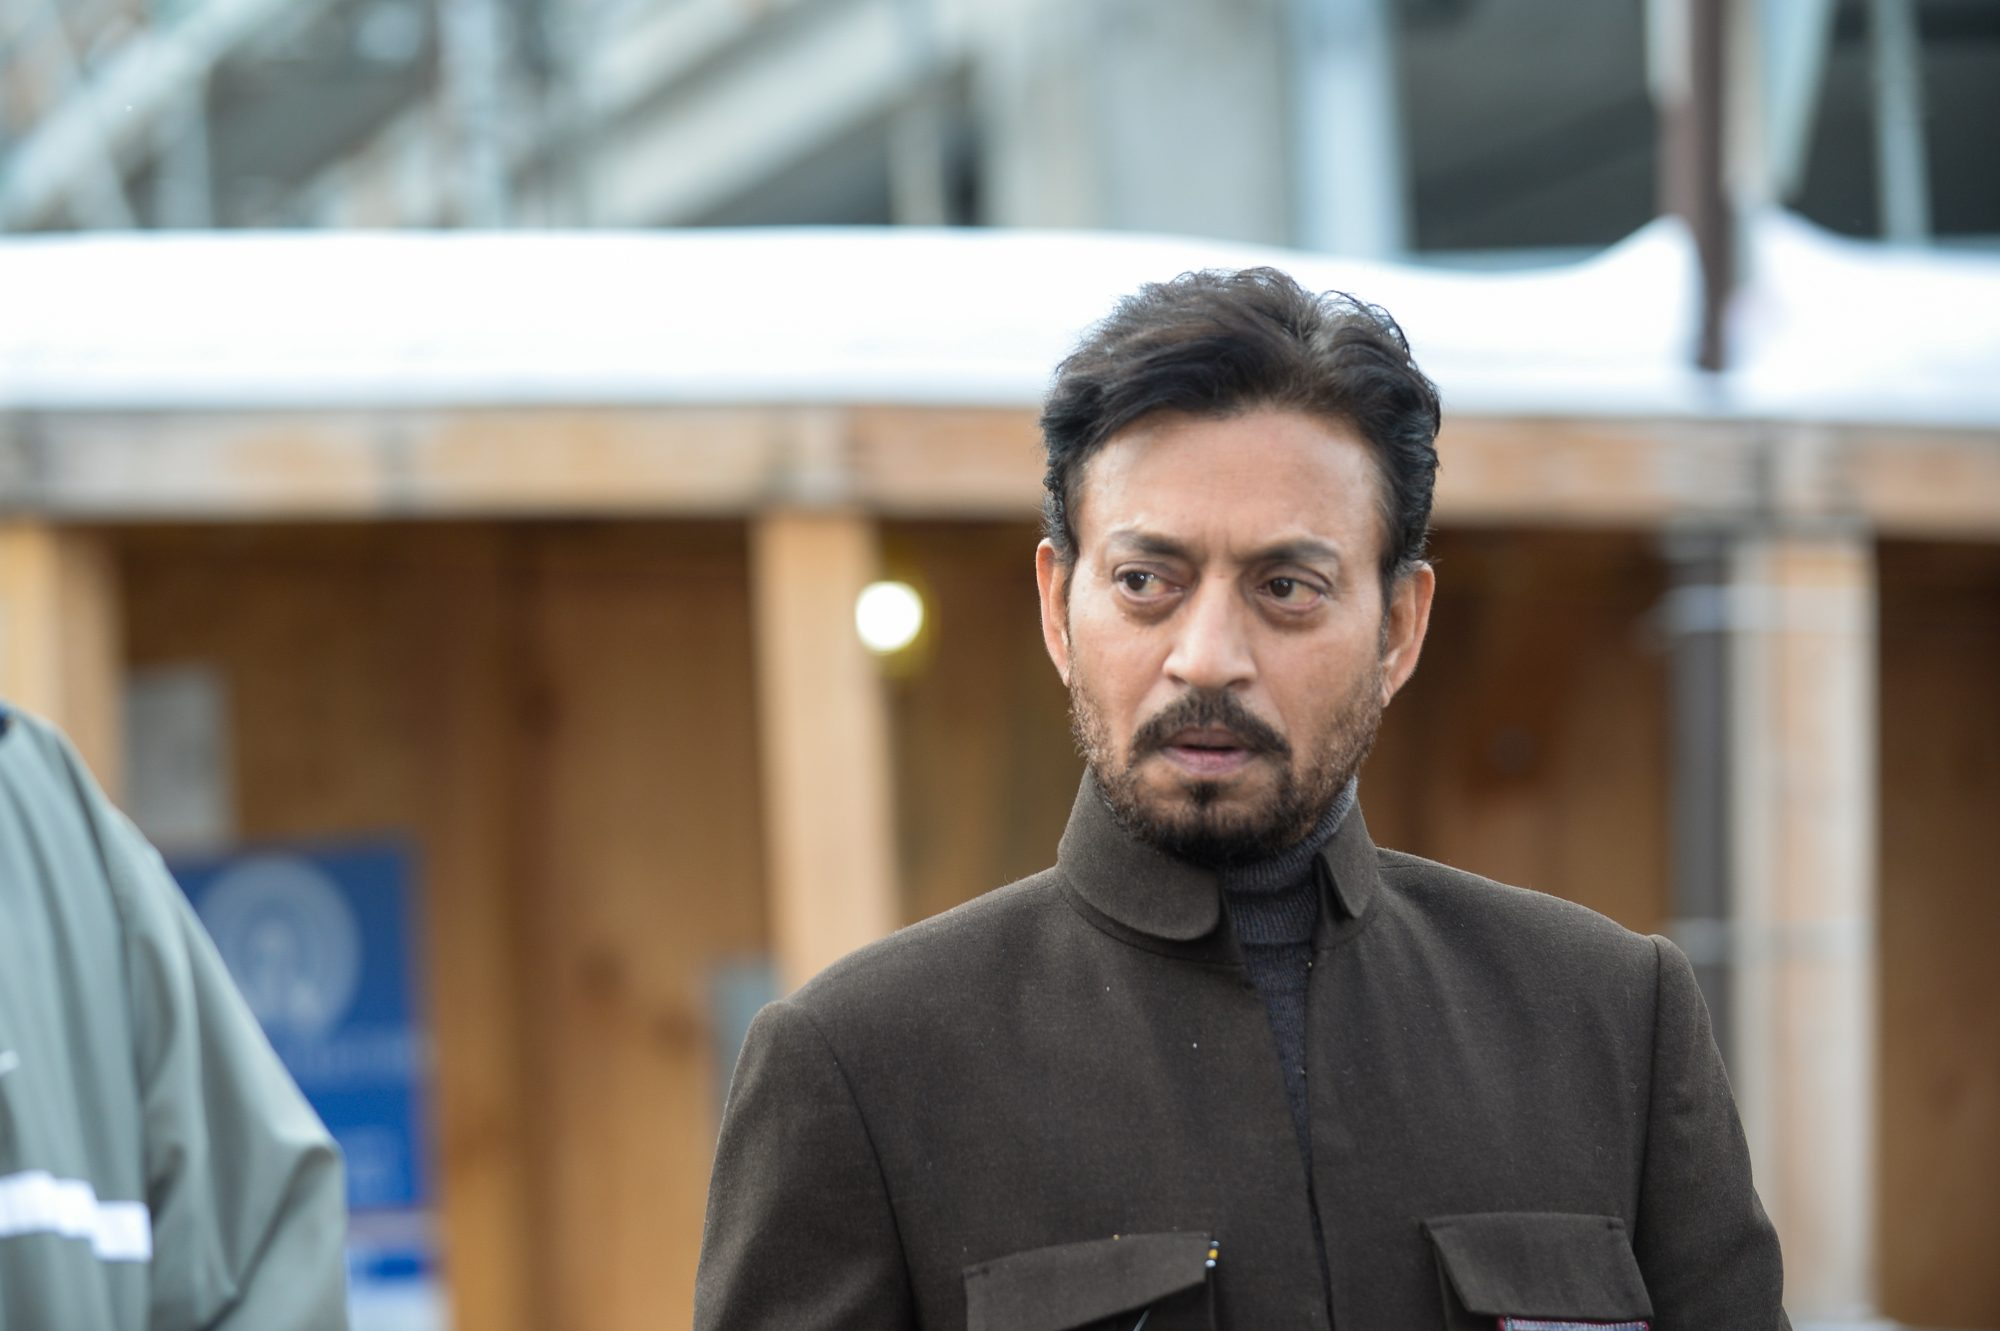 Bollywood Actor Irrfan Khan Reveals He Has a Neuroendocrine Tumor. What Is That?